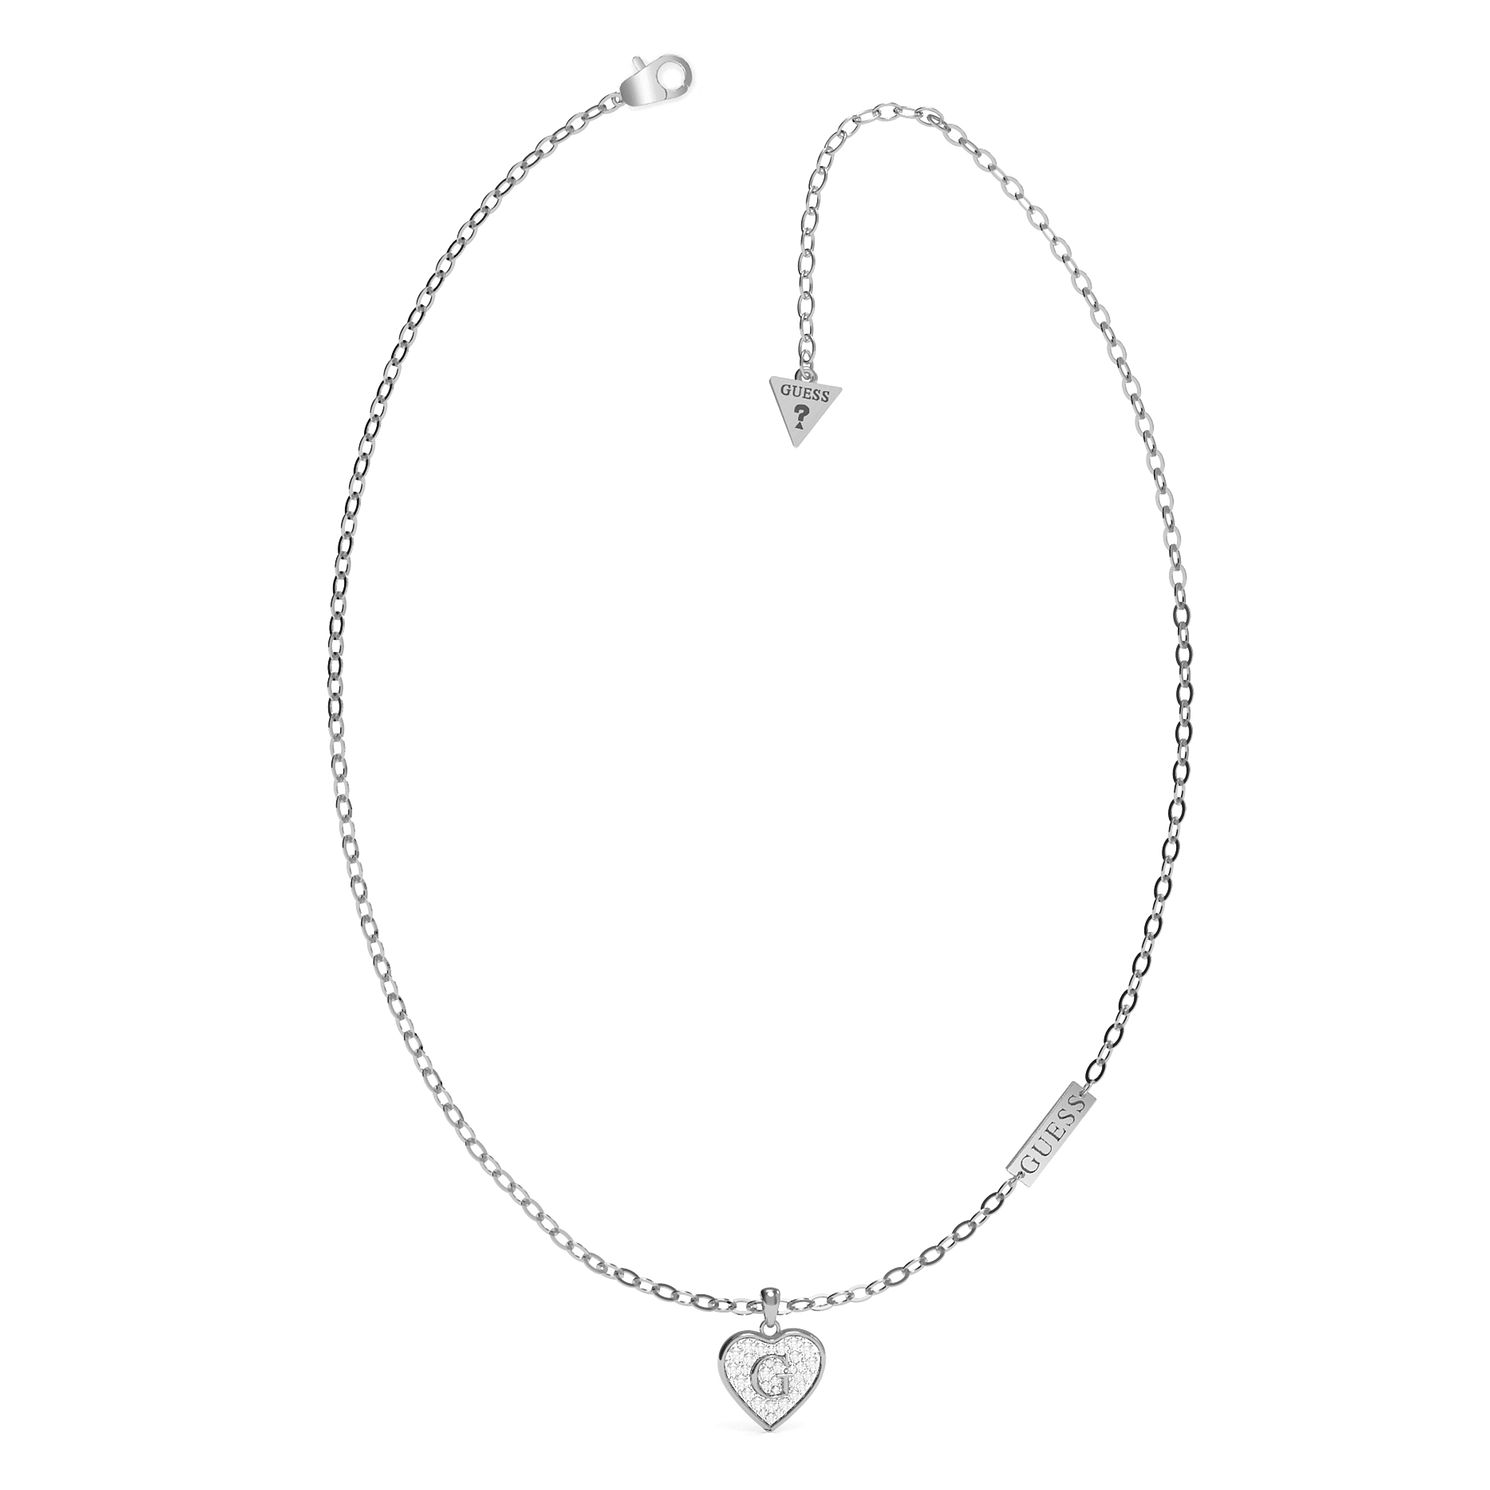 Guess G-Shine Silver Tone Swarovski Zirconia Necklace - Product number 5190436